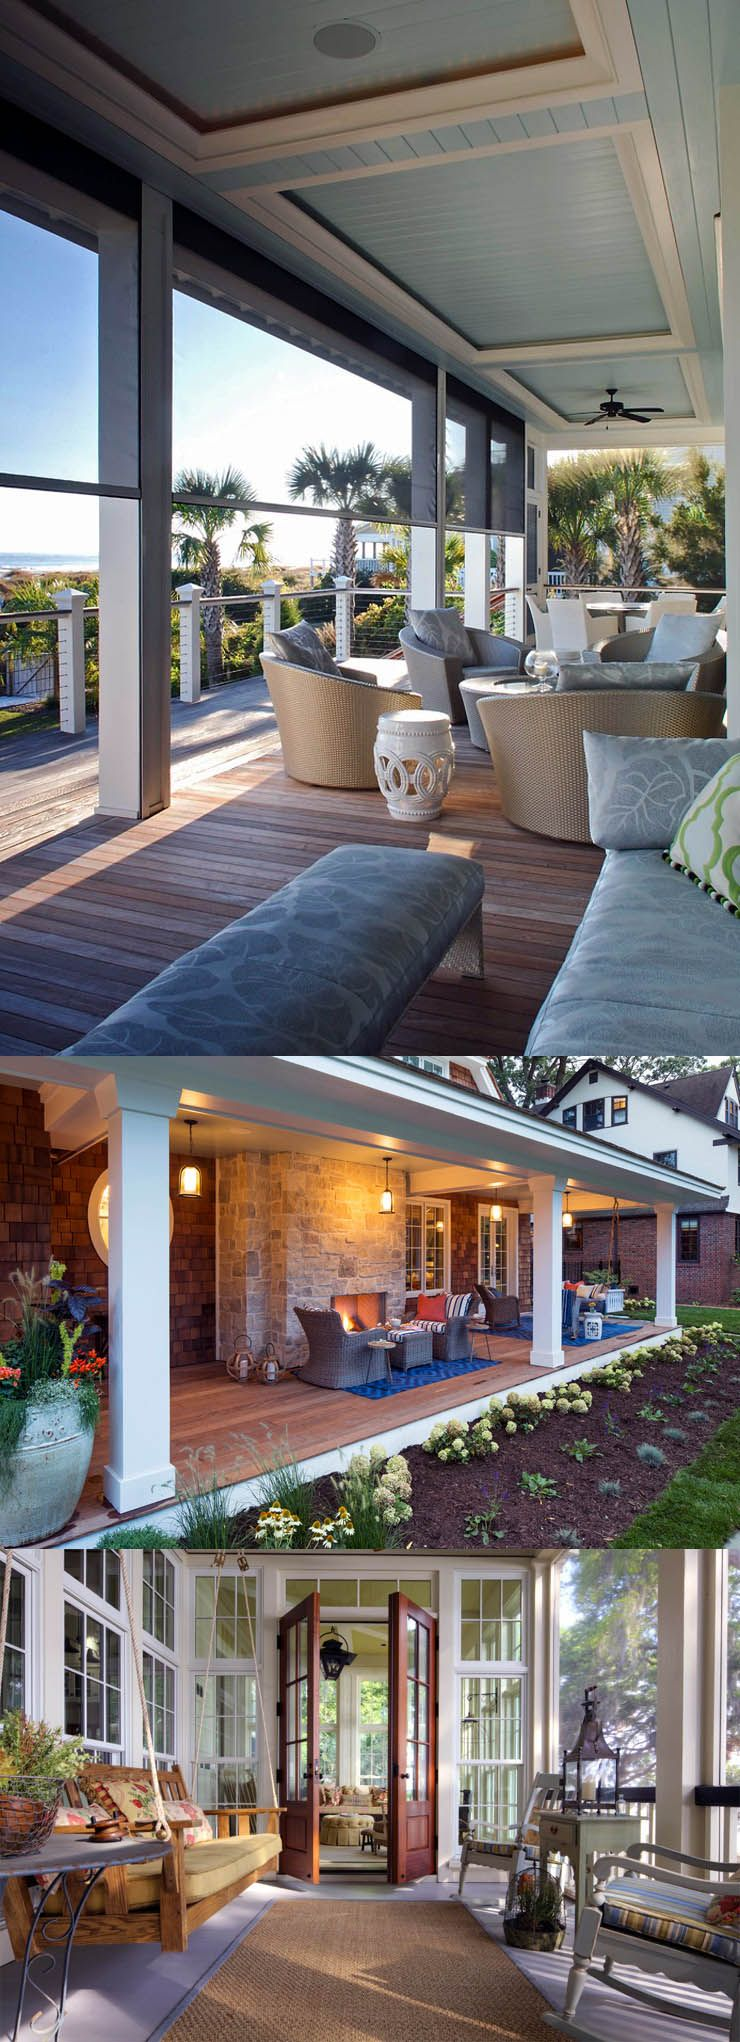 5 Back Porch Ideas & Designs For Small Homes | House with ... on Back Deck Ideas For Ranch Style Homes  id=36881